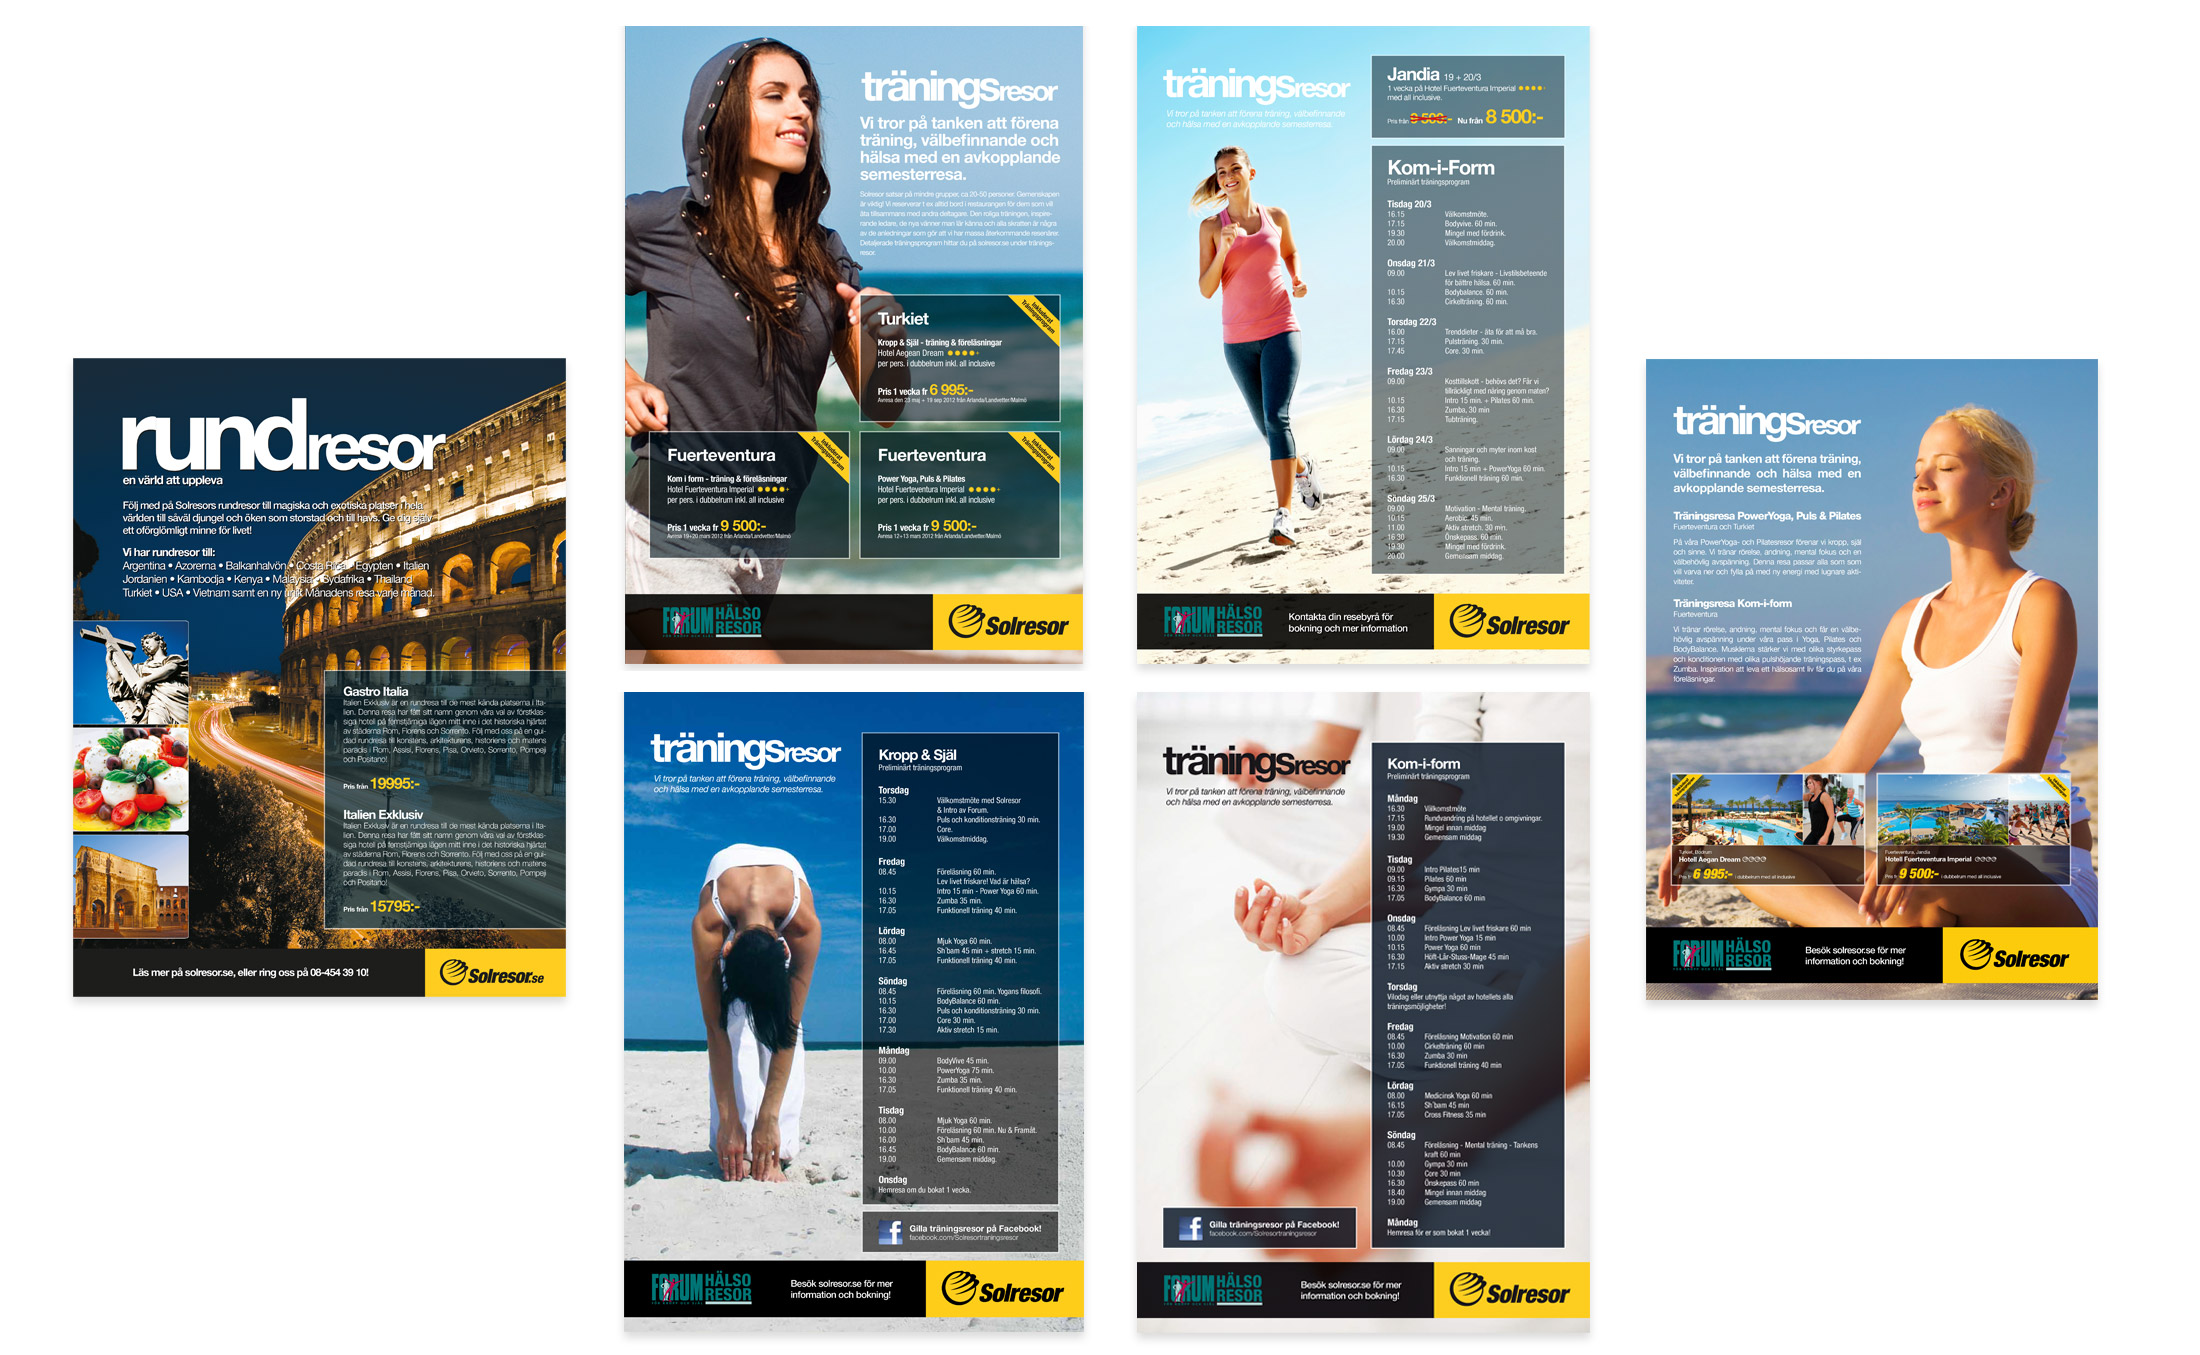 Solresor ads and posters